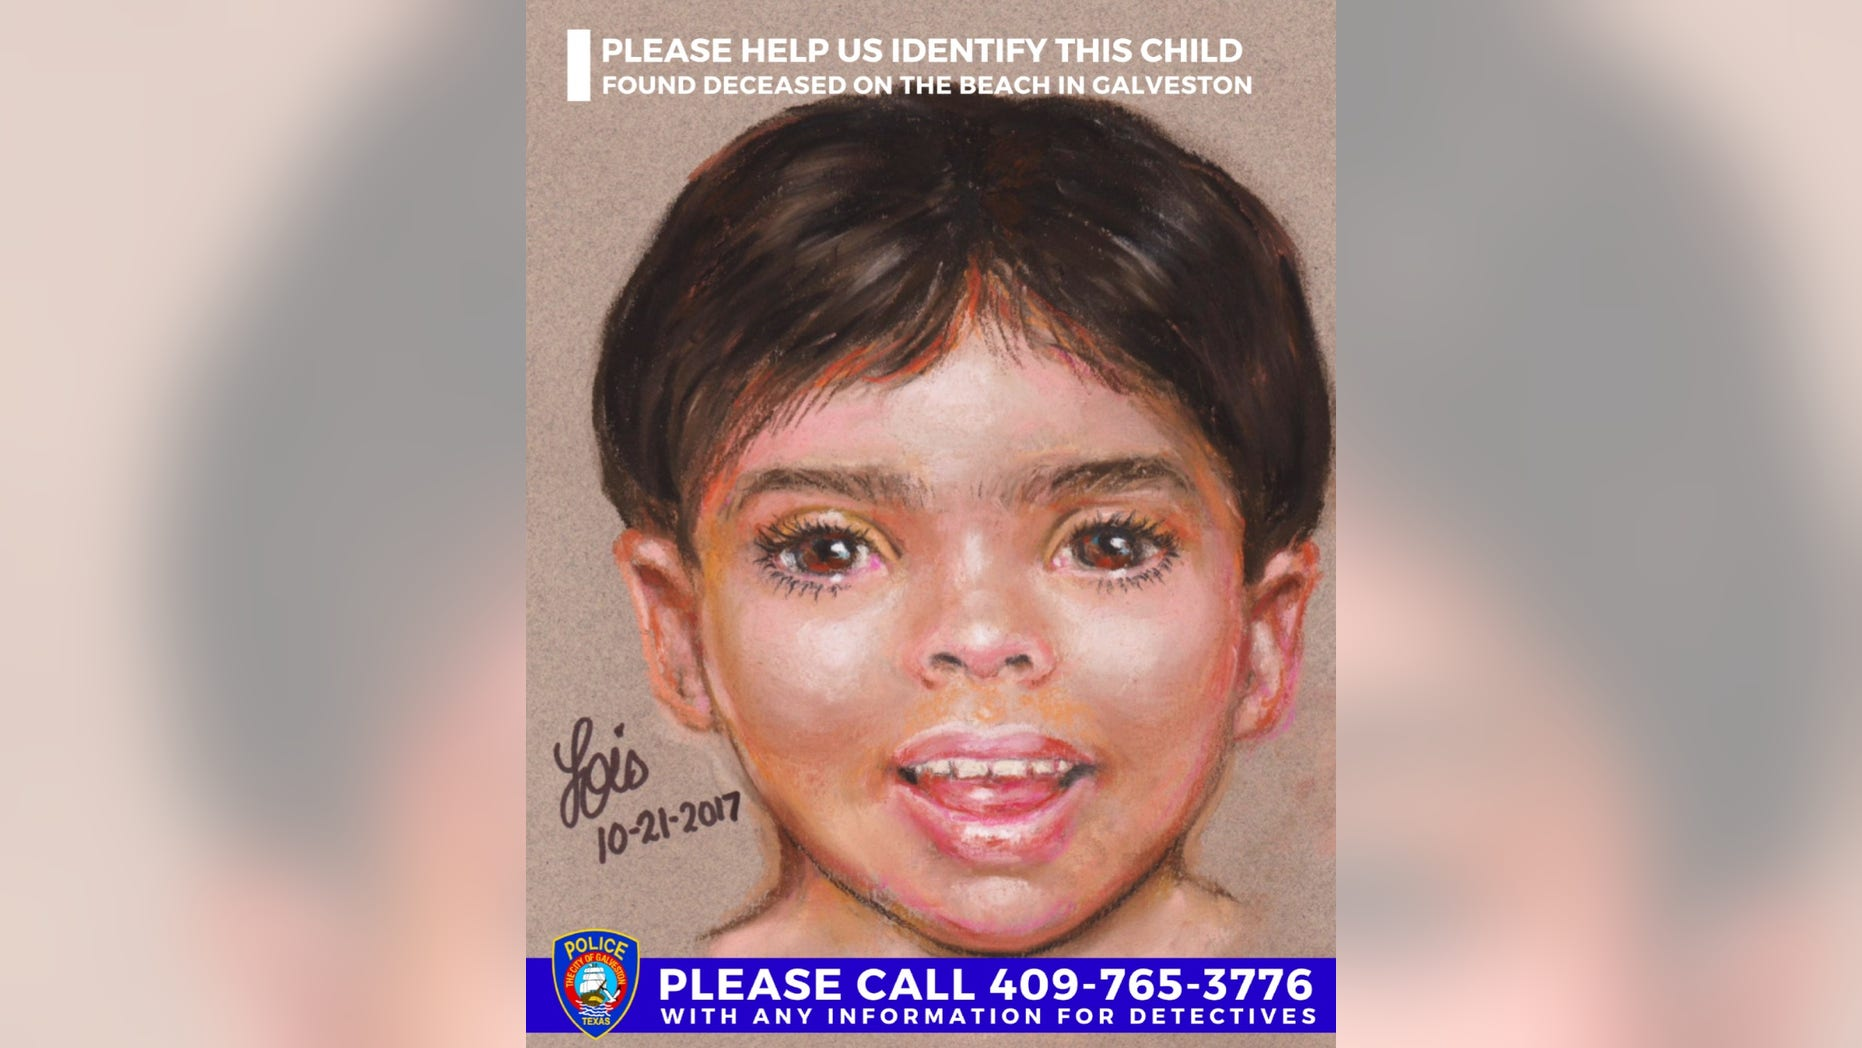 The Galveston Police Department released a sketch of a young boy whose body was found on a Galveston beach on Friday.